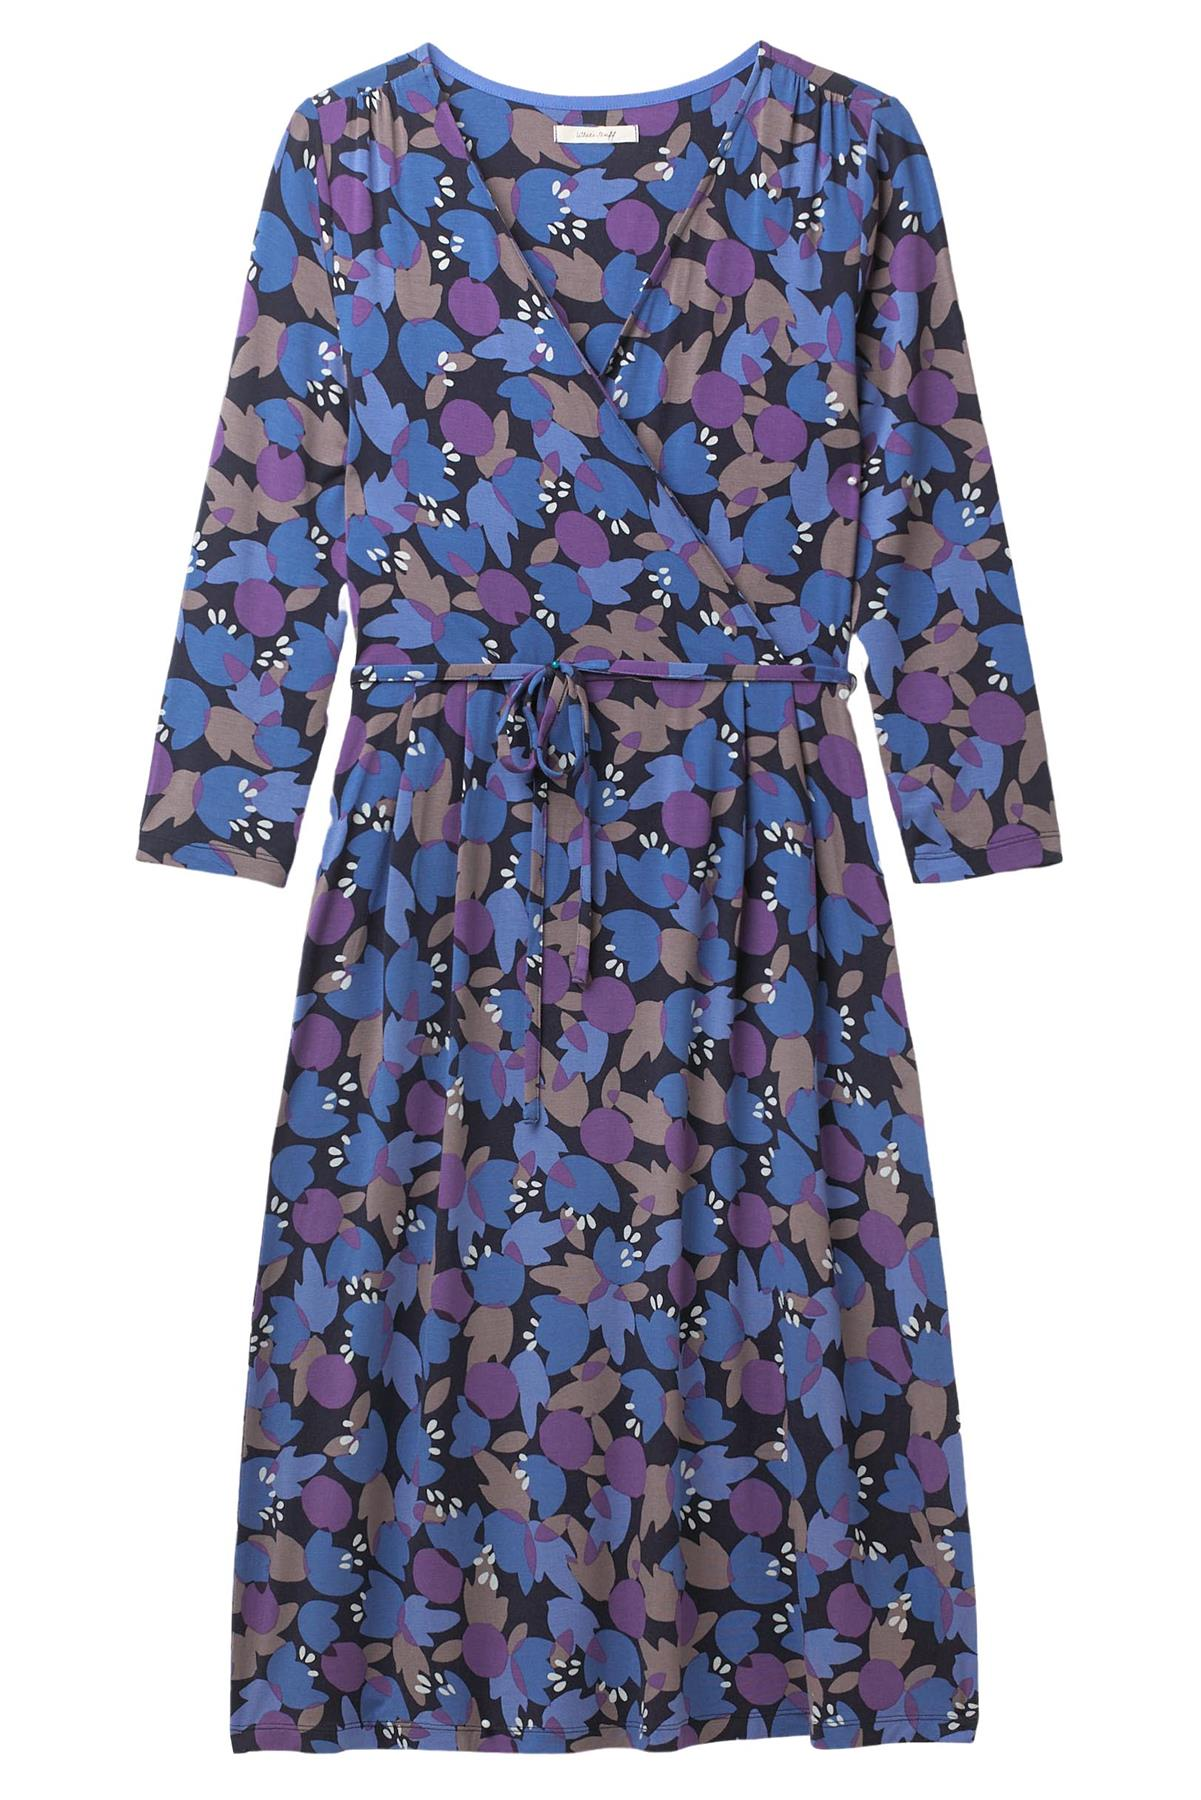 NEW White Stuff Ladies Anet Blue Purple Printed Wrap Dress Szs 8-18 RRP £49.95